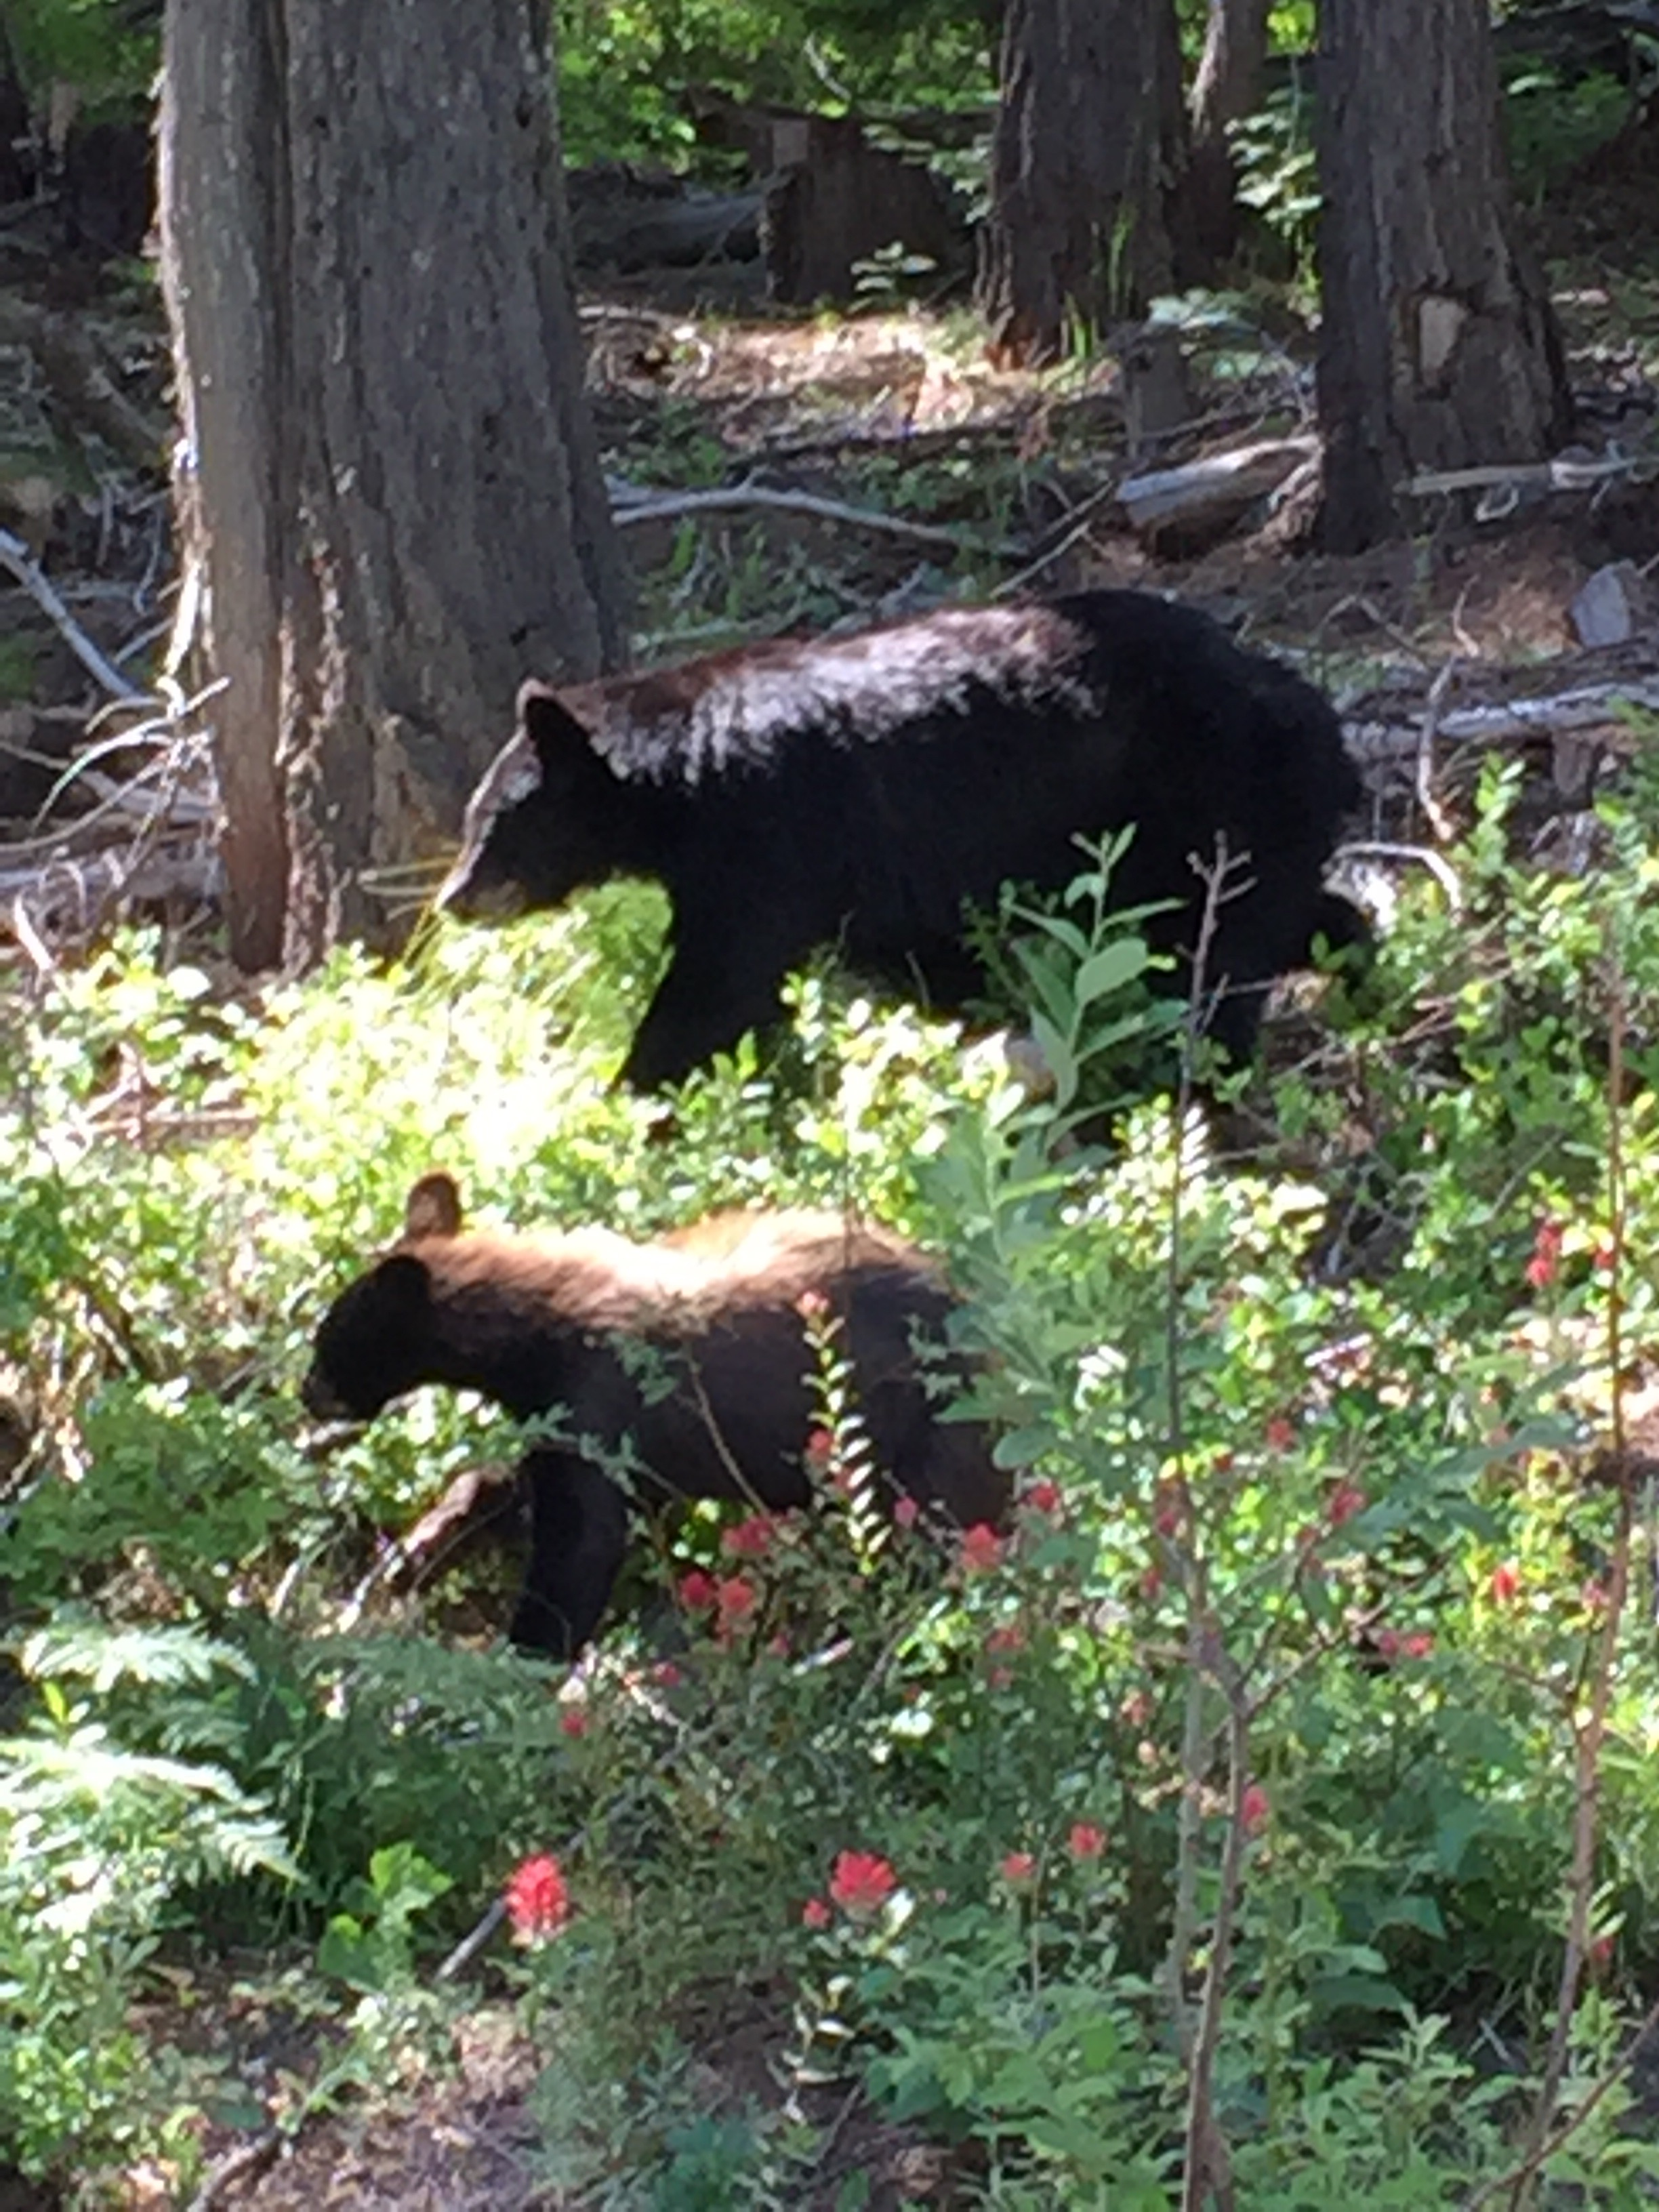 We got lucky on the way to  Schweitzer Mountain  and saw a mama black bear with her cubs